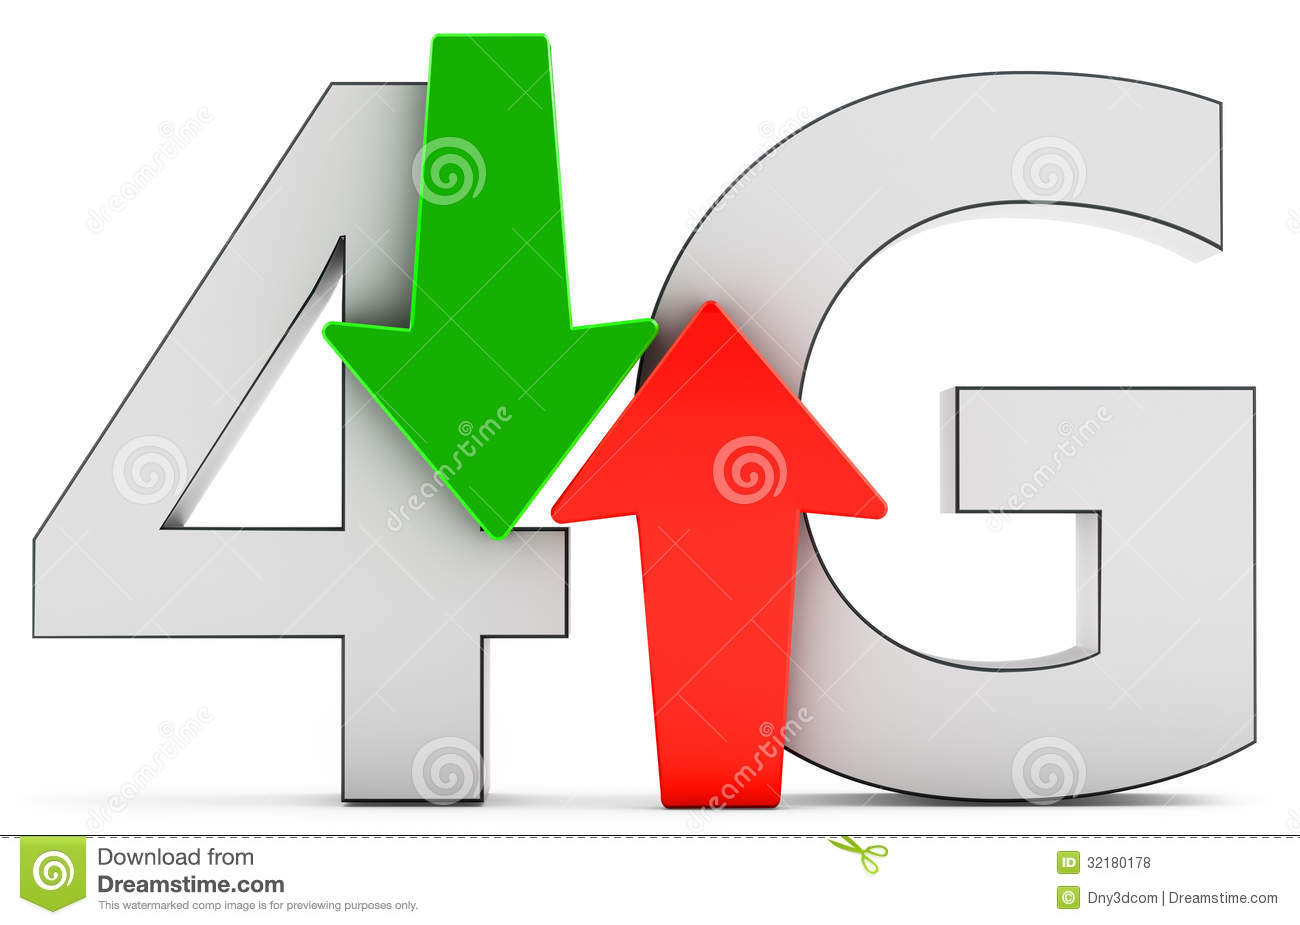 4g wireless technology Emerging standards and technologies like lte and m-wimax are actually   research and development in 4g wireless communication systems.